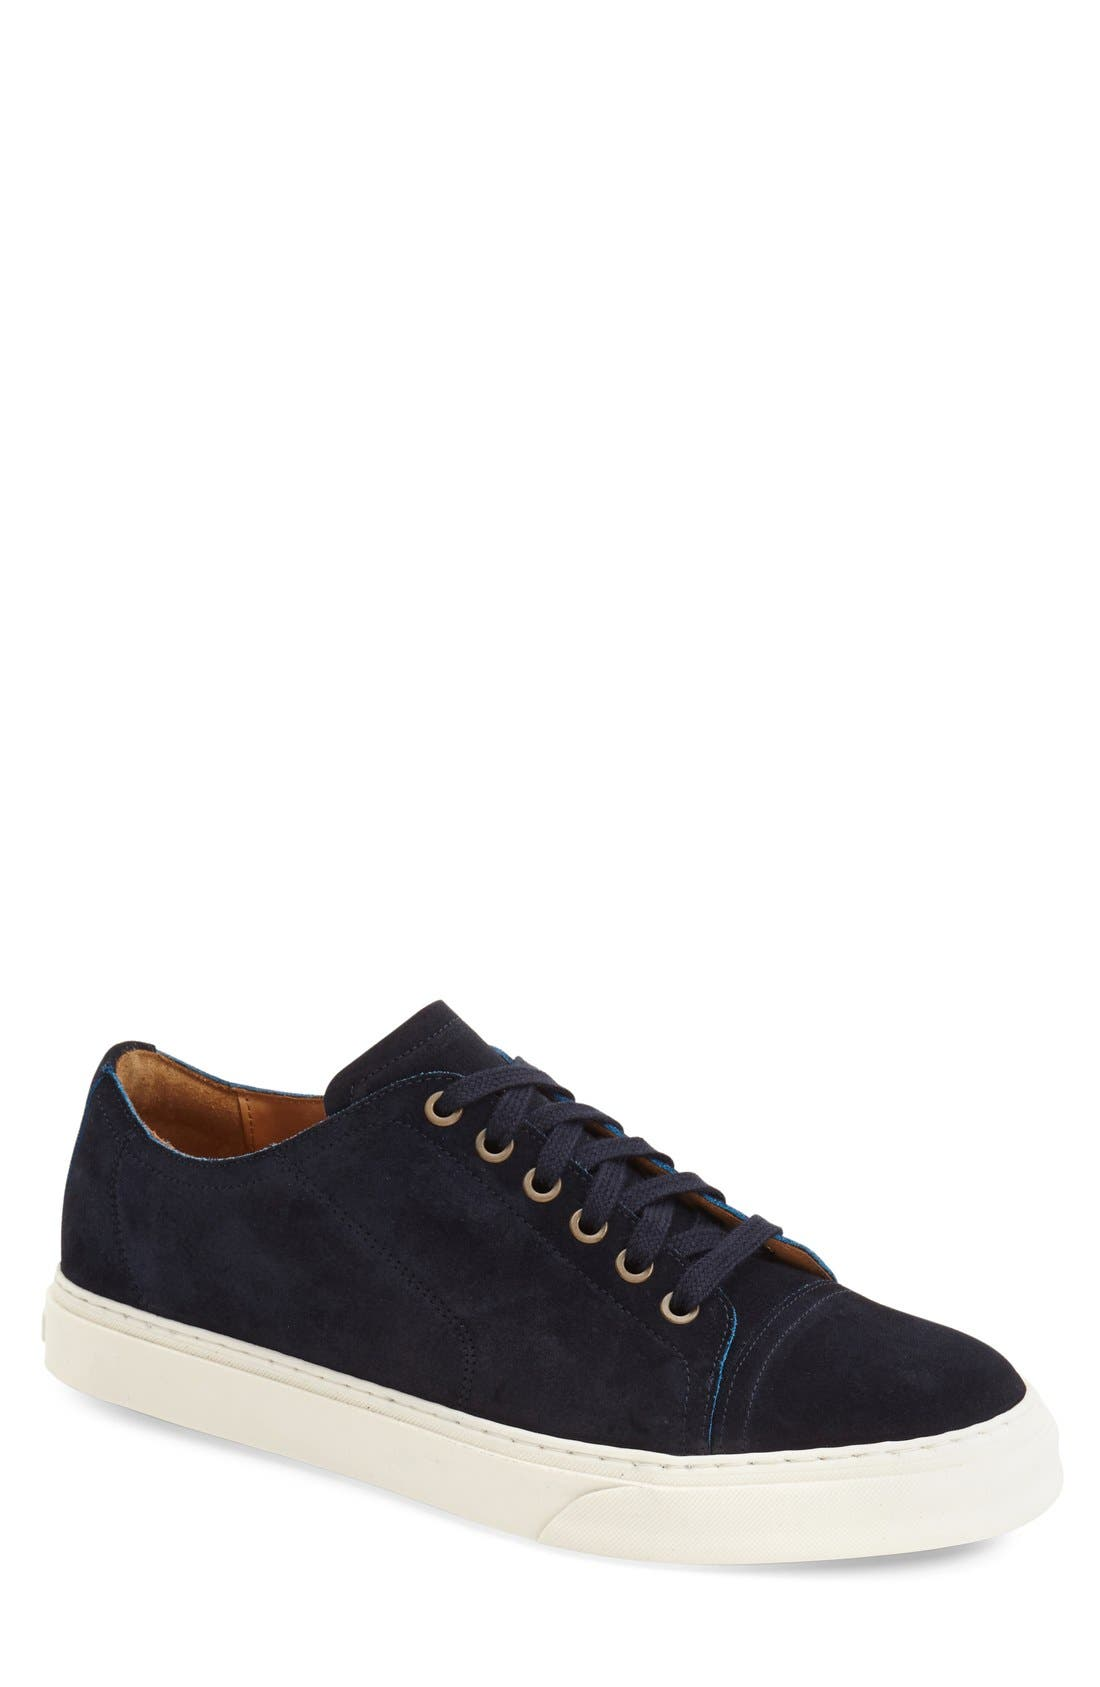 'Quort' Sneaker,                             Main thumbnail 1, color,                             Navy Suede